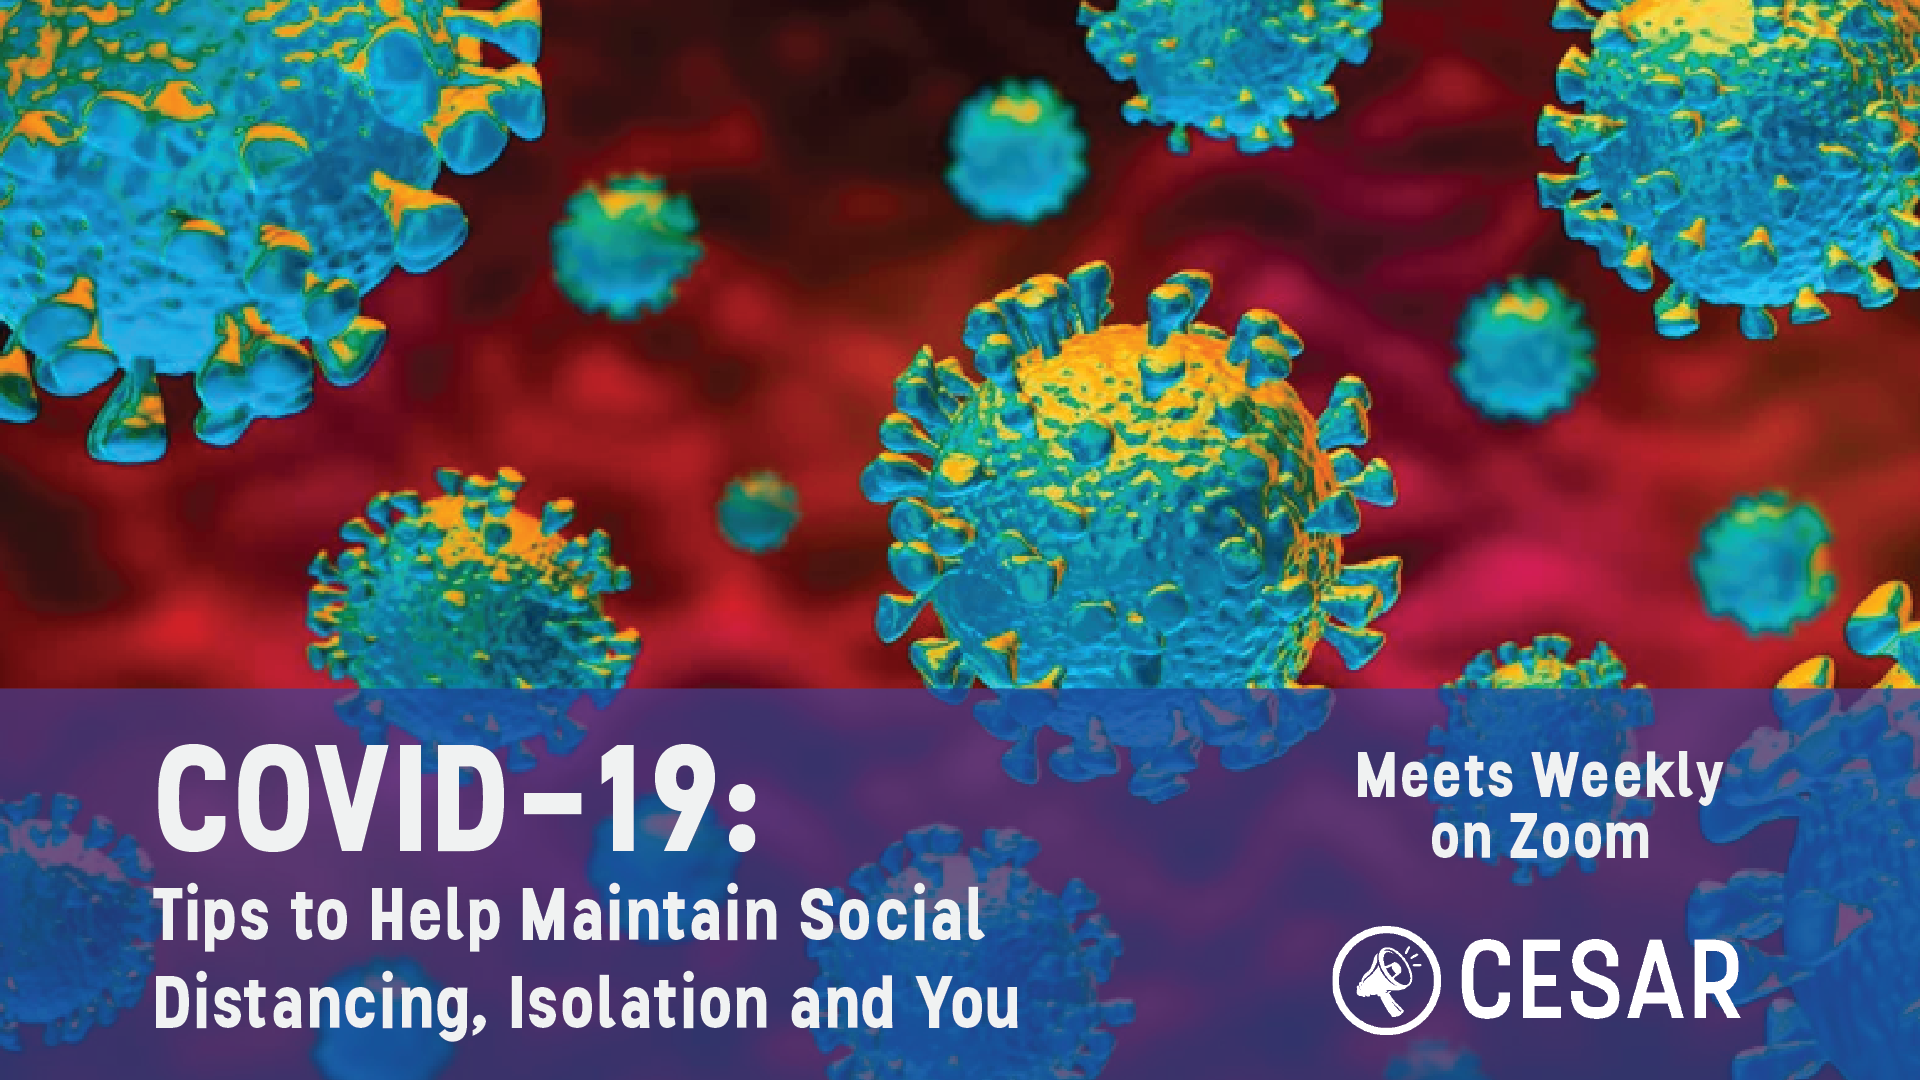 """Image of Covid-19 virus in blue surrounded by red. White text on purple background on bottom of image reads: """"Covid-19: Tips to Help Maintain Social Distancing, Isolation and You. Meets Weekly on Zoom."""" Logo on bottom left with megaphone and the text """"CESAR."""""""